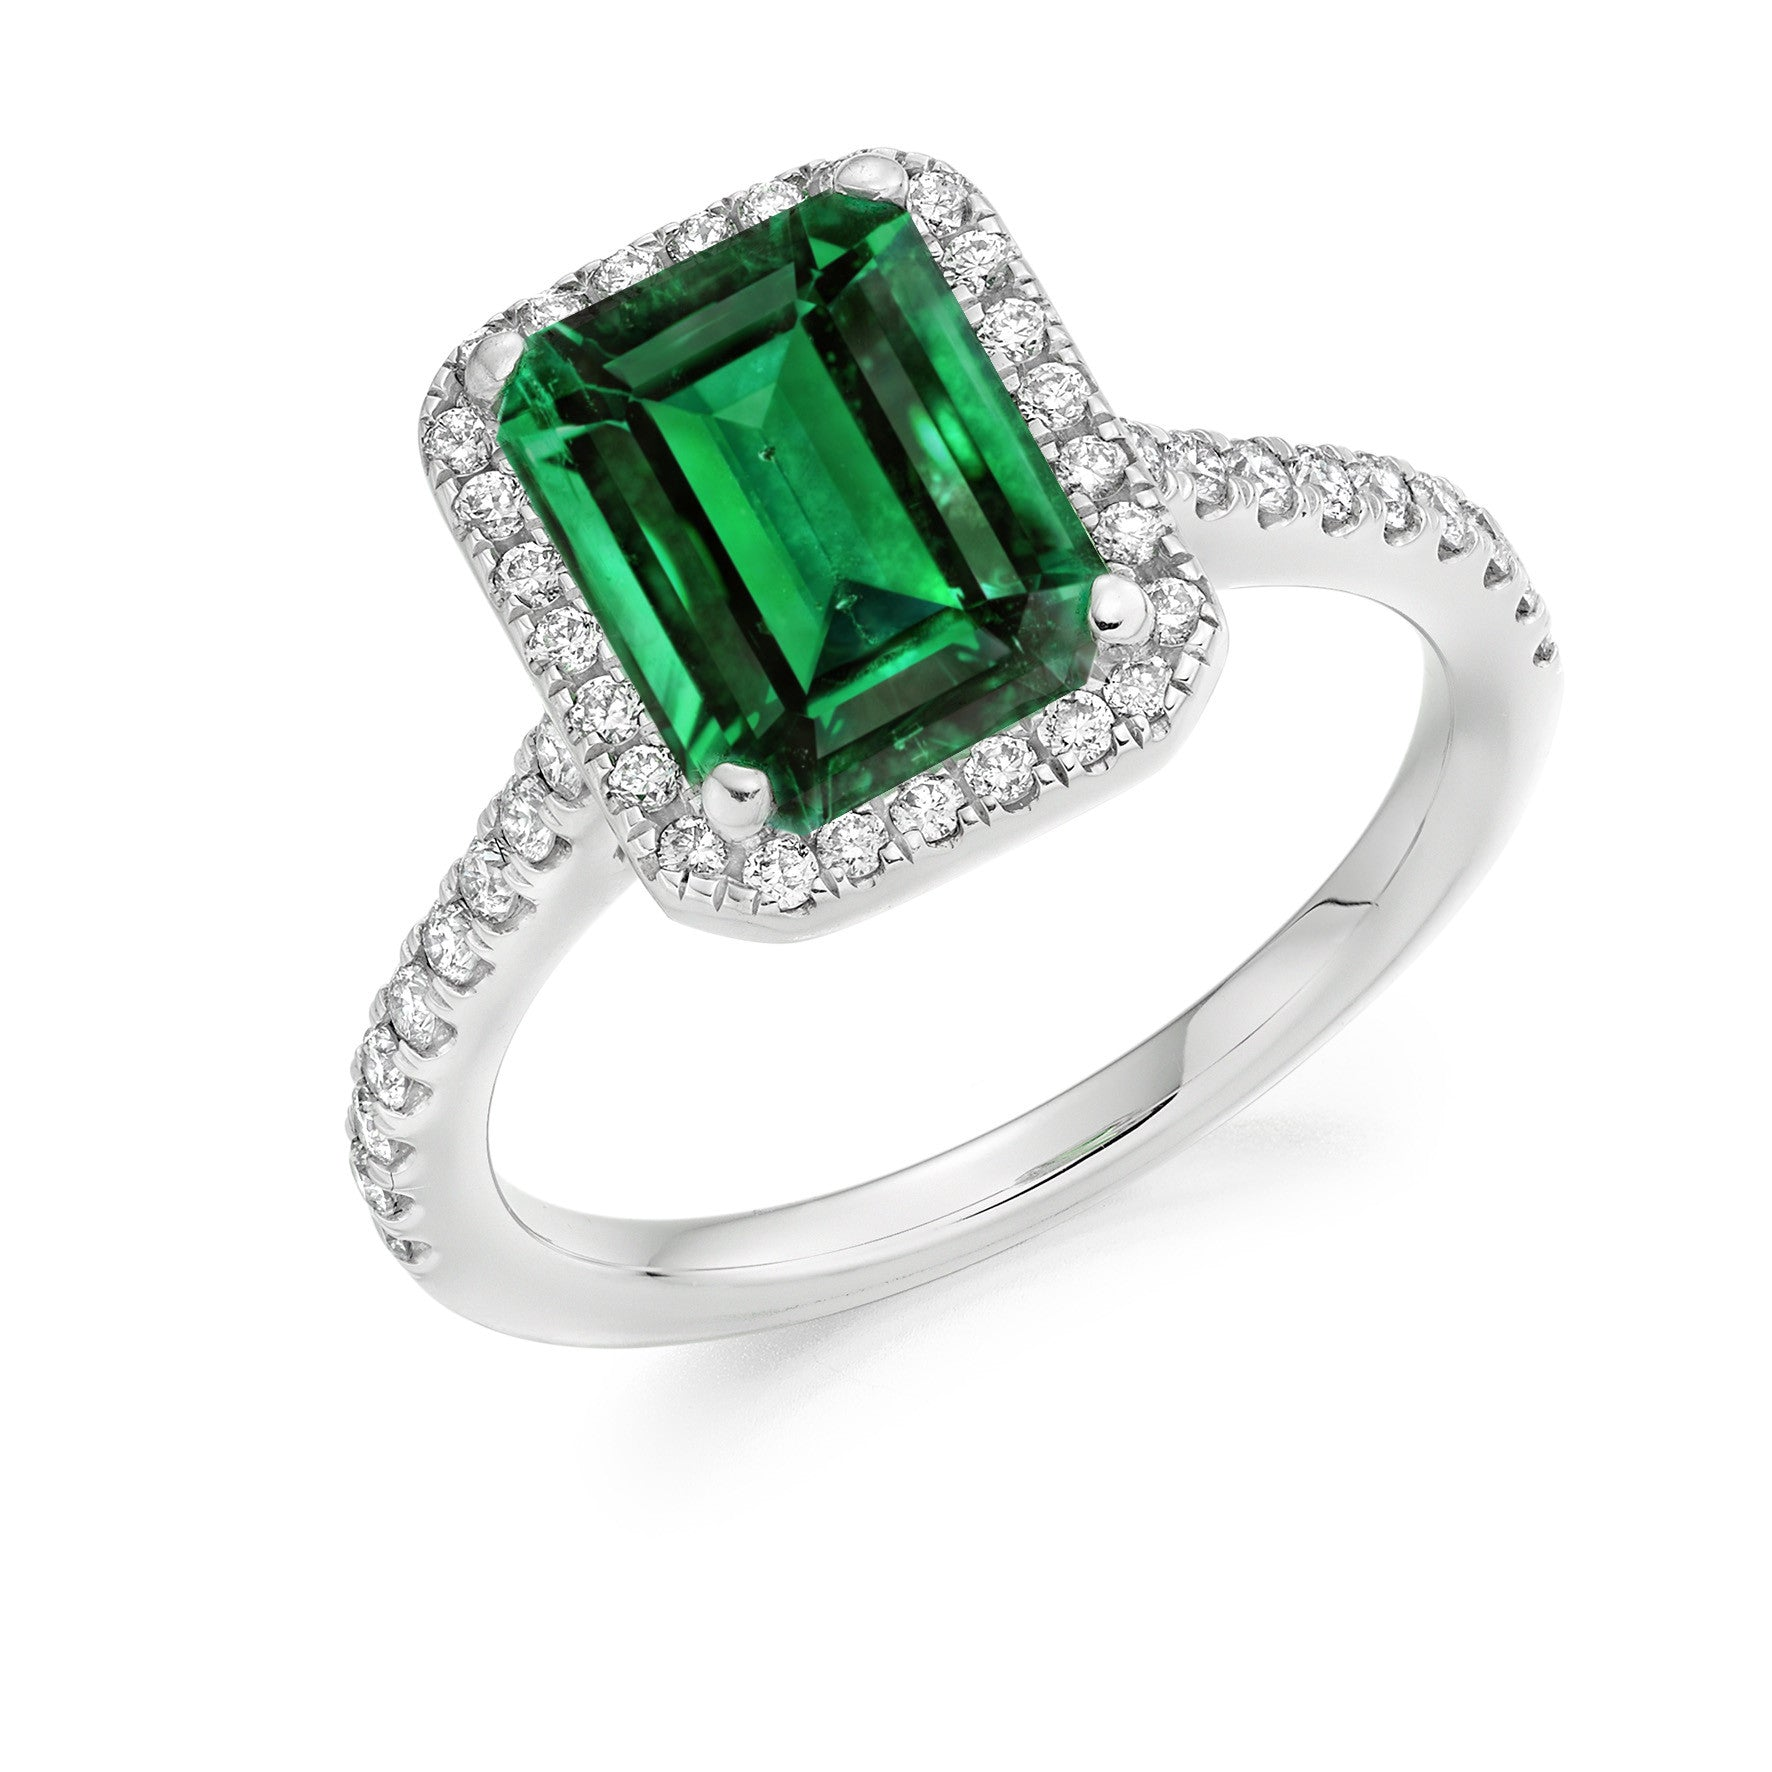 weight diamond total gold cut ct a gem in emerald jewelry ring white